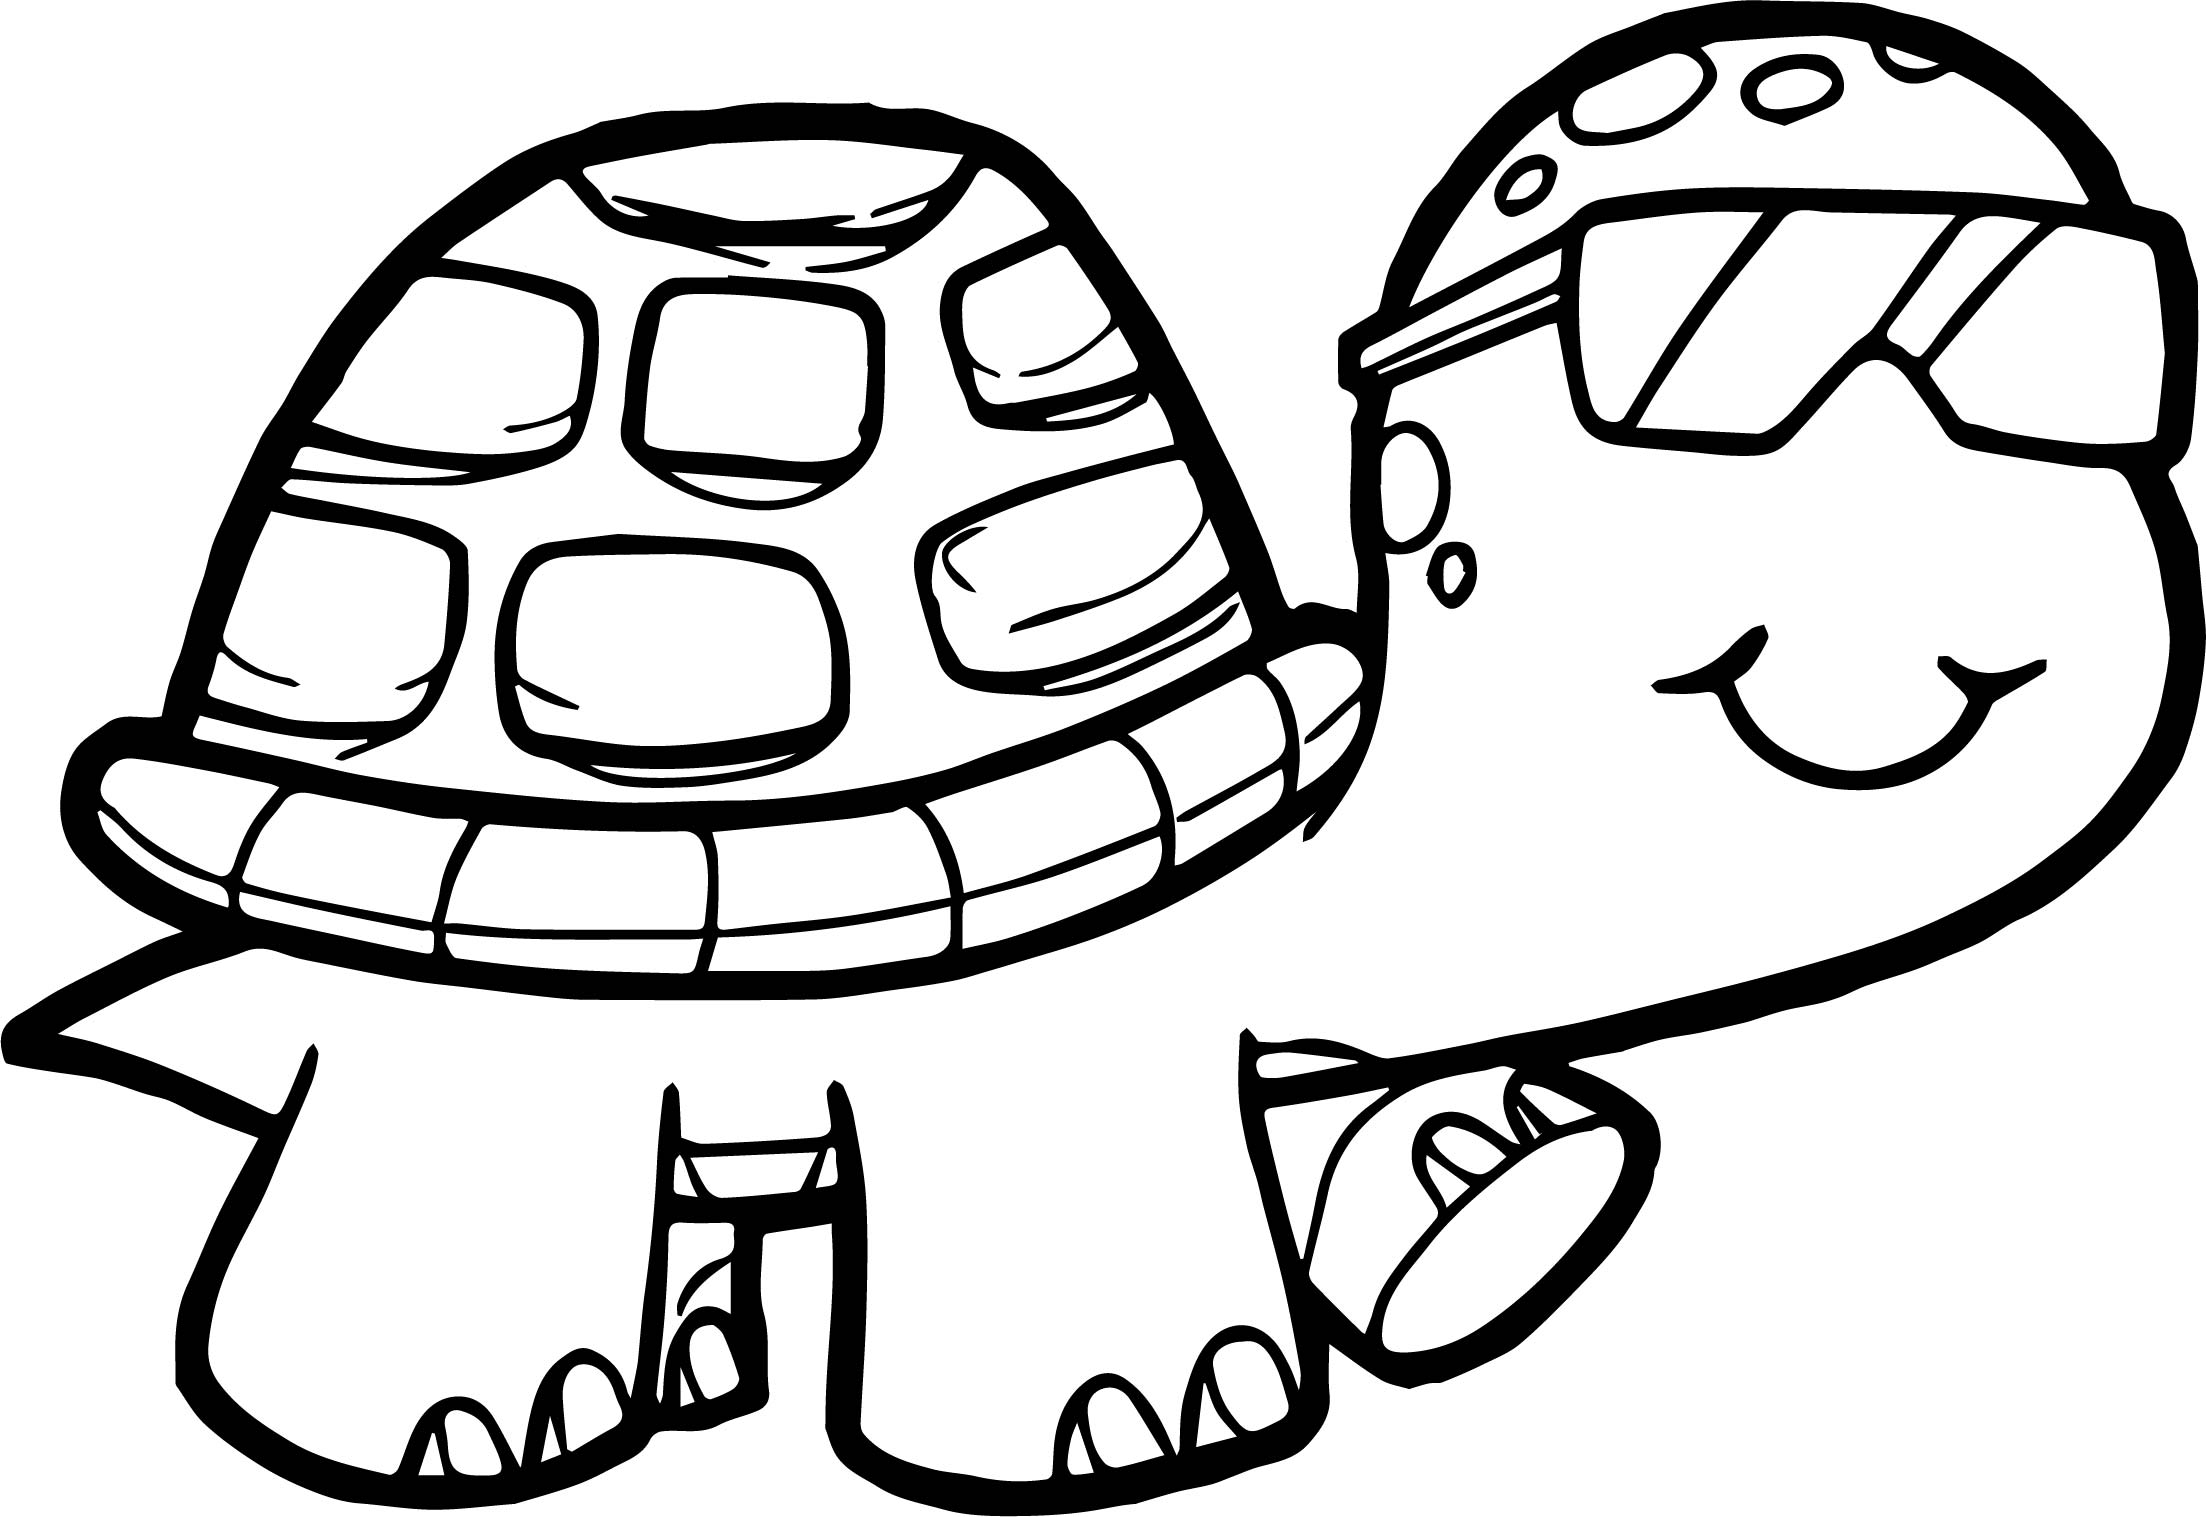 turtle printable coloring pages free turtle coloring pages for adults printable to printable coloring pages turtle